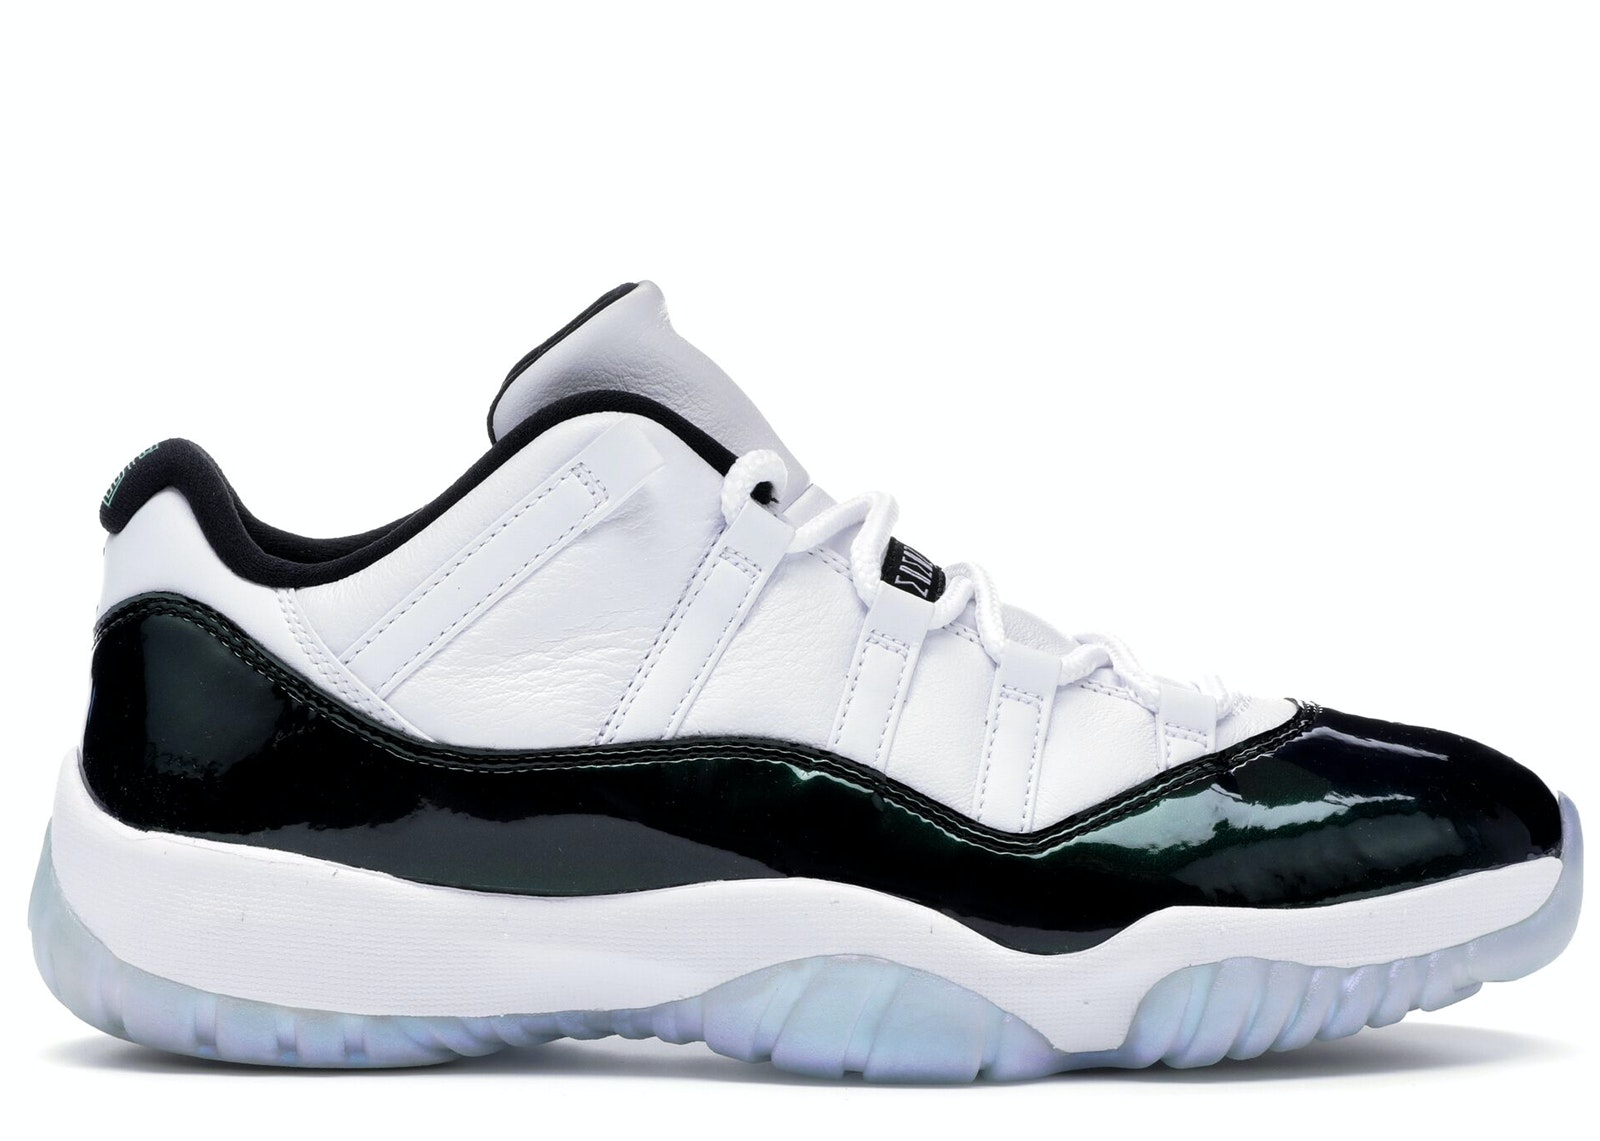 air jordan xi retro low